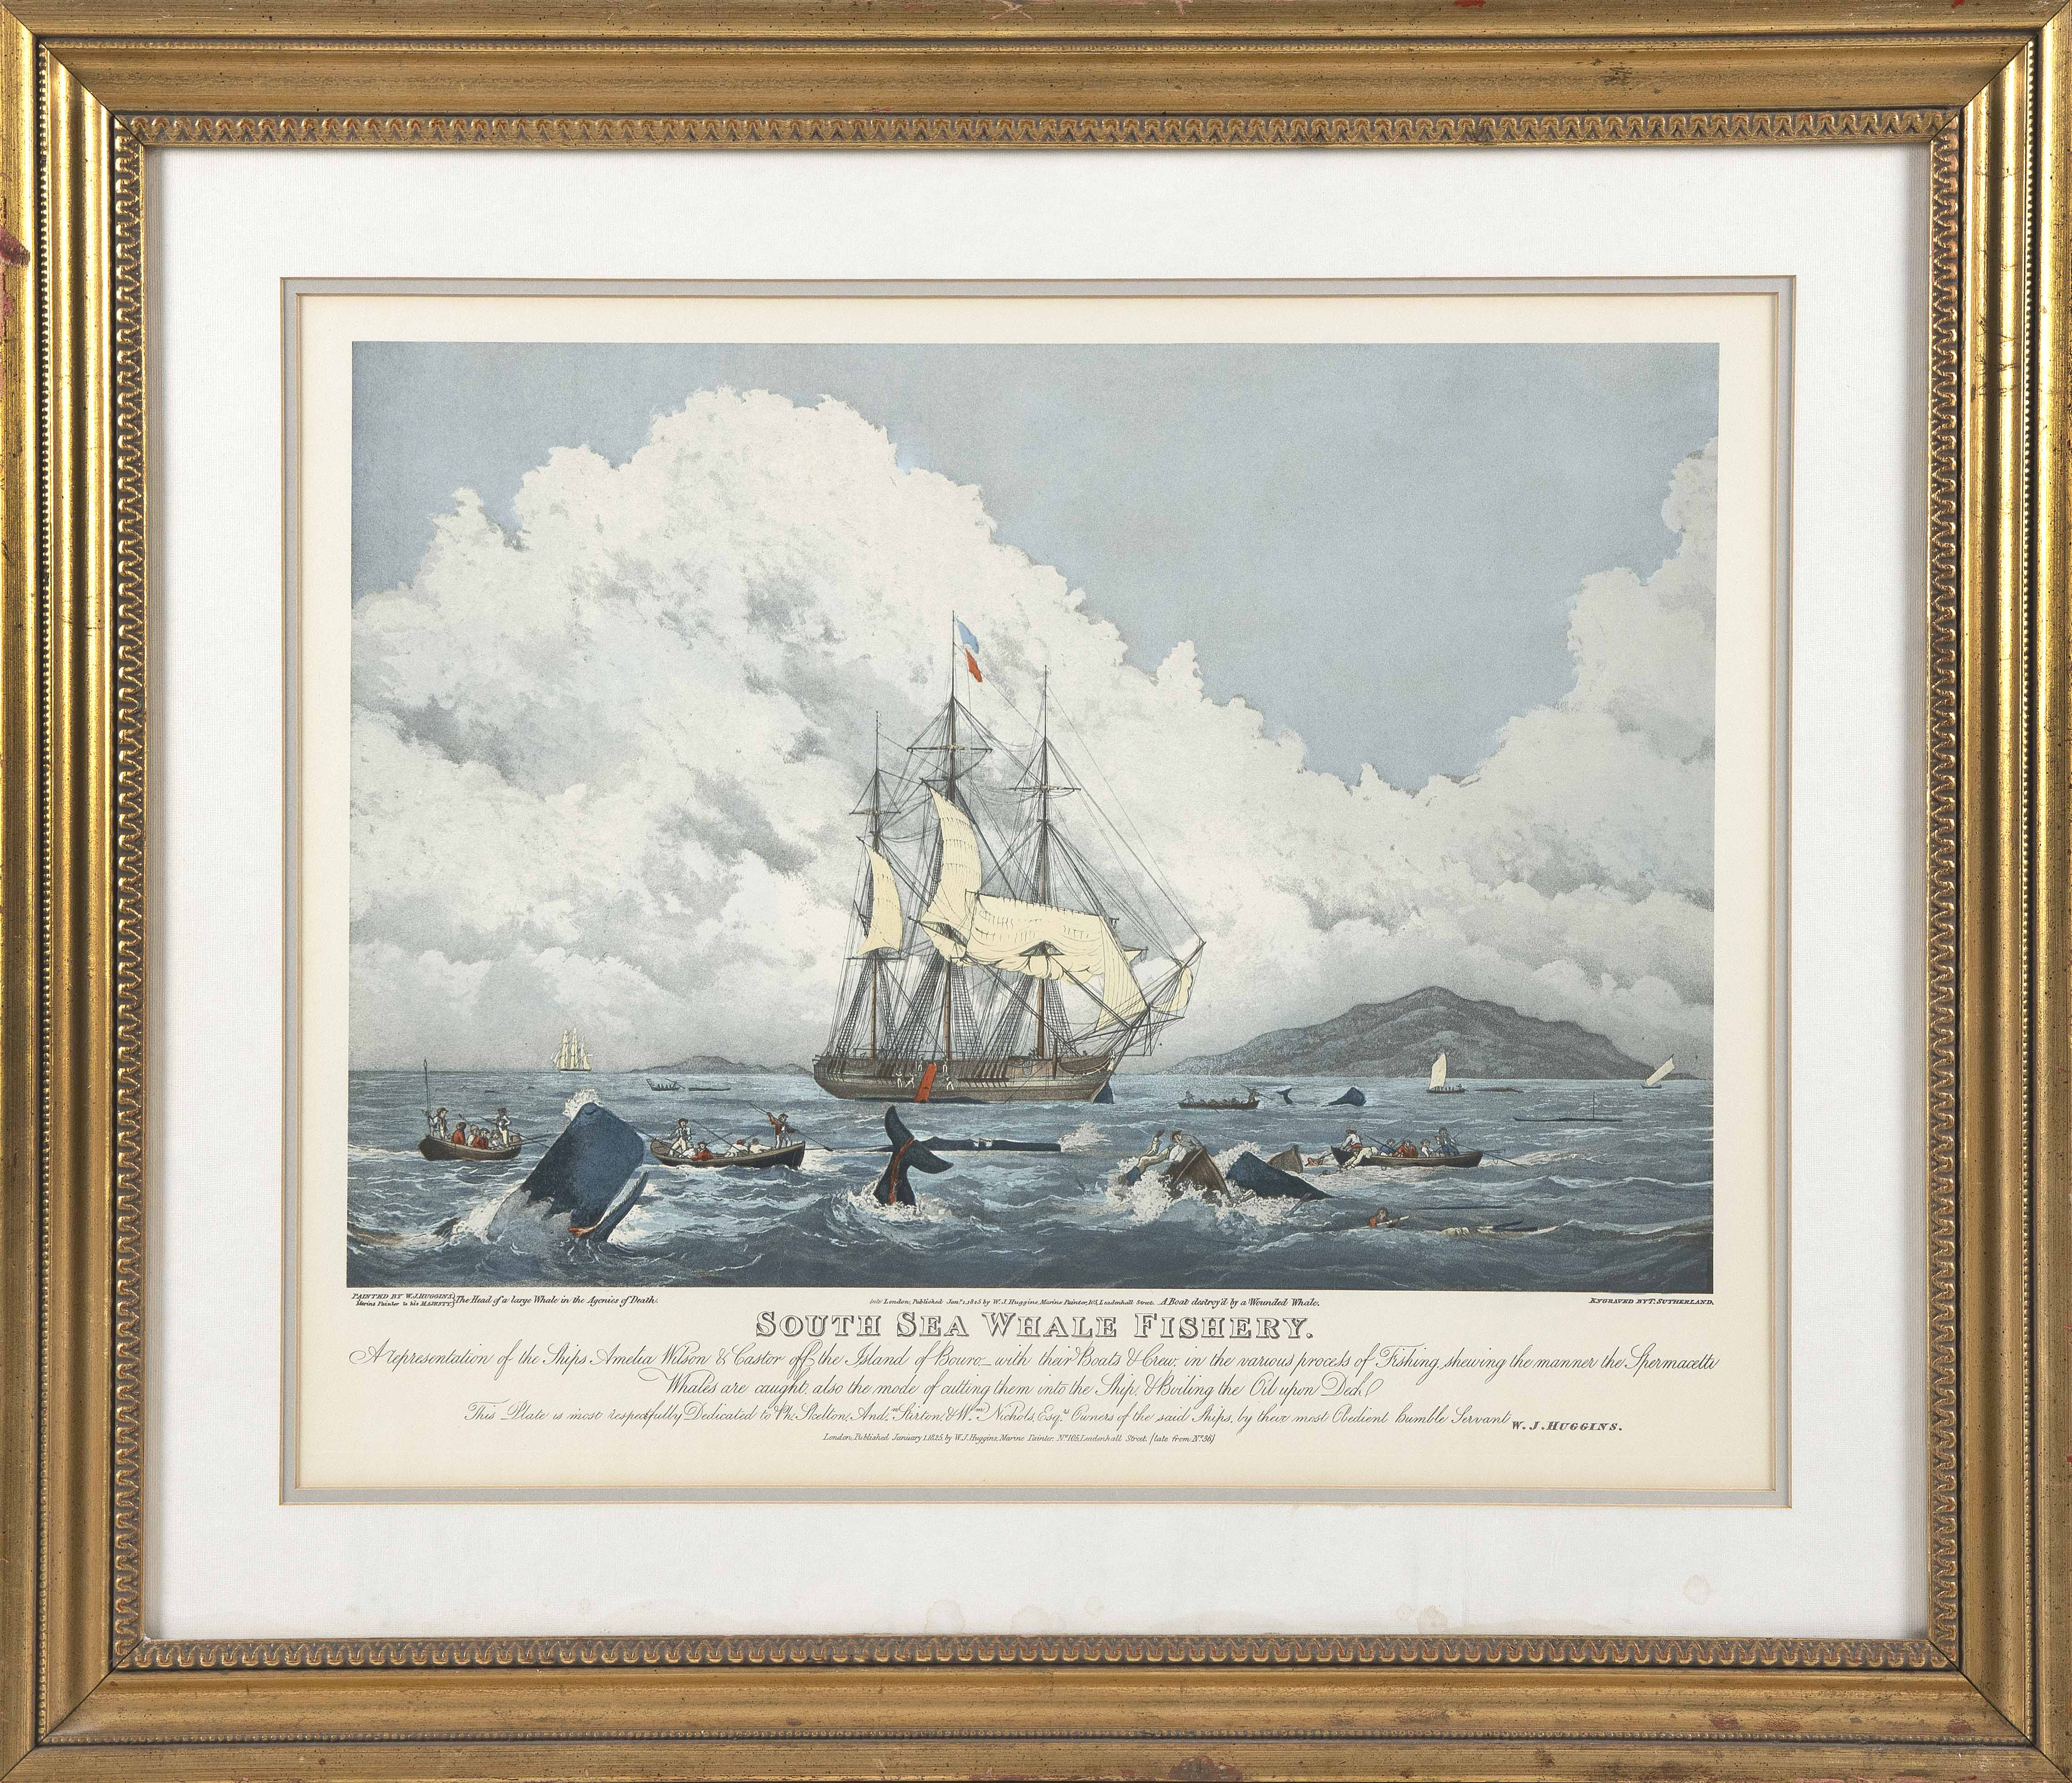 """COLORED ENGRAVING """"SOUTH SEA WHALE FISHERY"""" 19th Century 18.25"""" x 22.75"""" sight. Framed 26.75"""" x 31.25""""."""